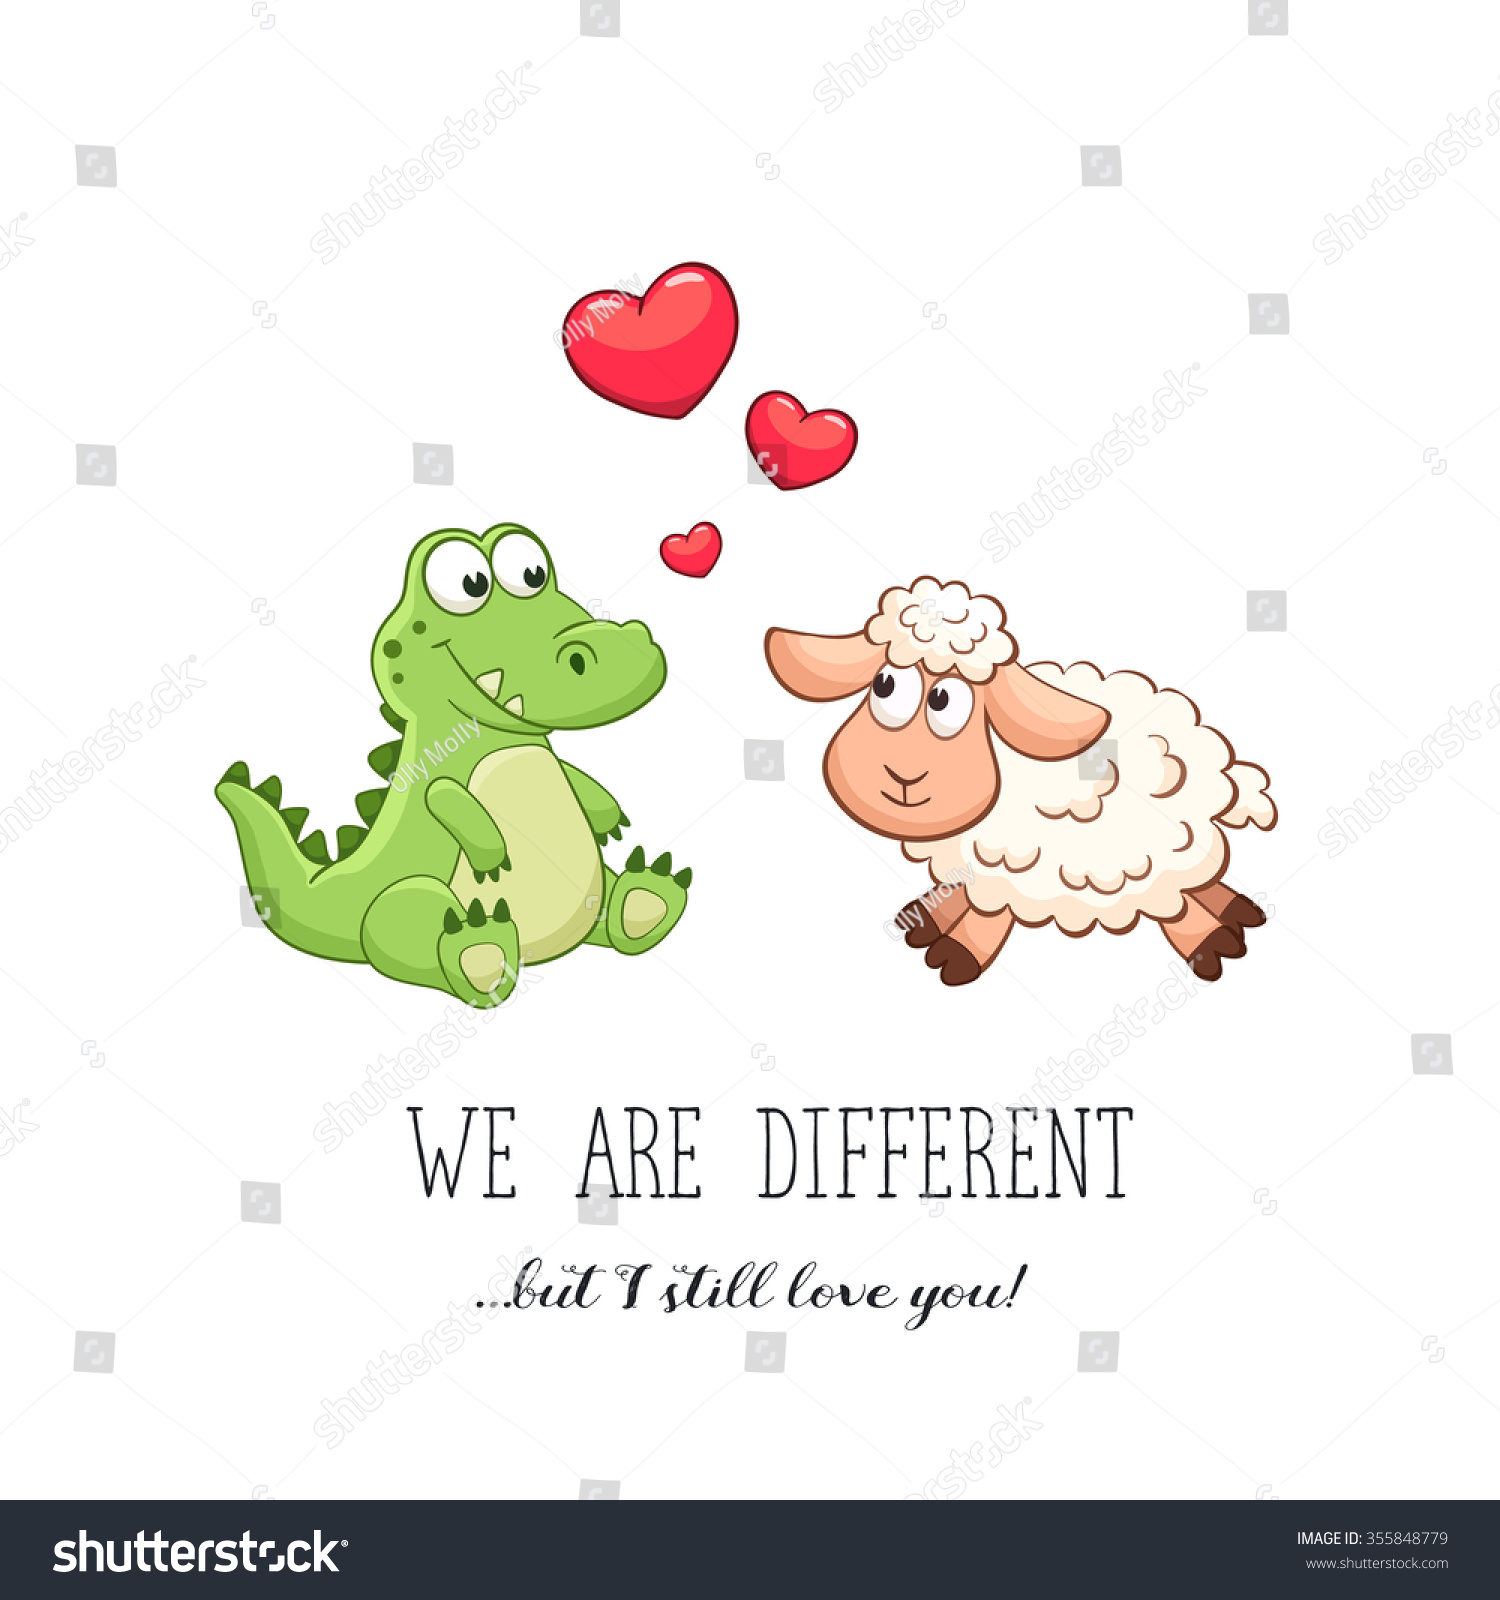 Valentineu0027s Day. Funny Greeting Card. We Are Different But